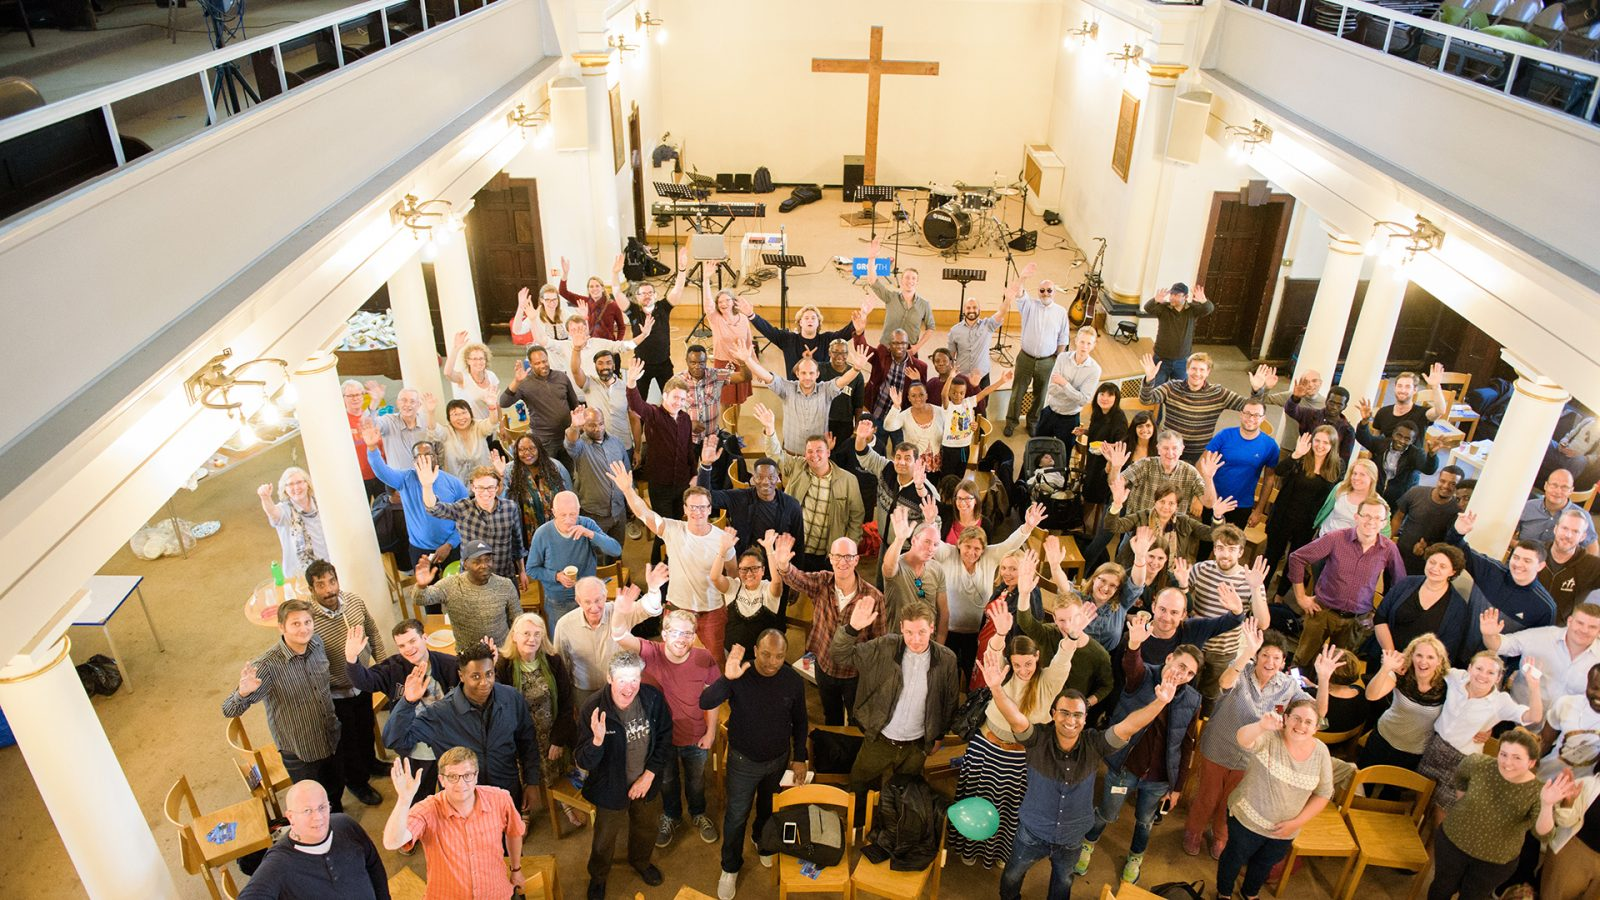 Lots of people in a church, waving and smiling.